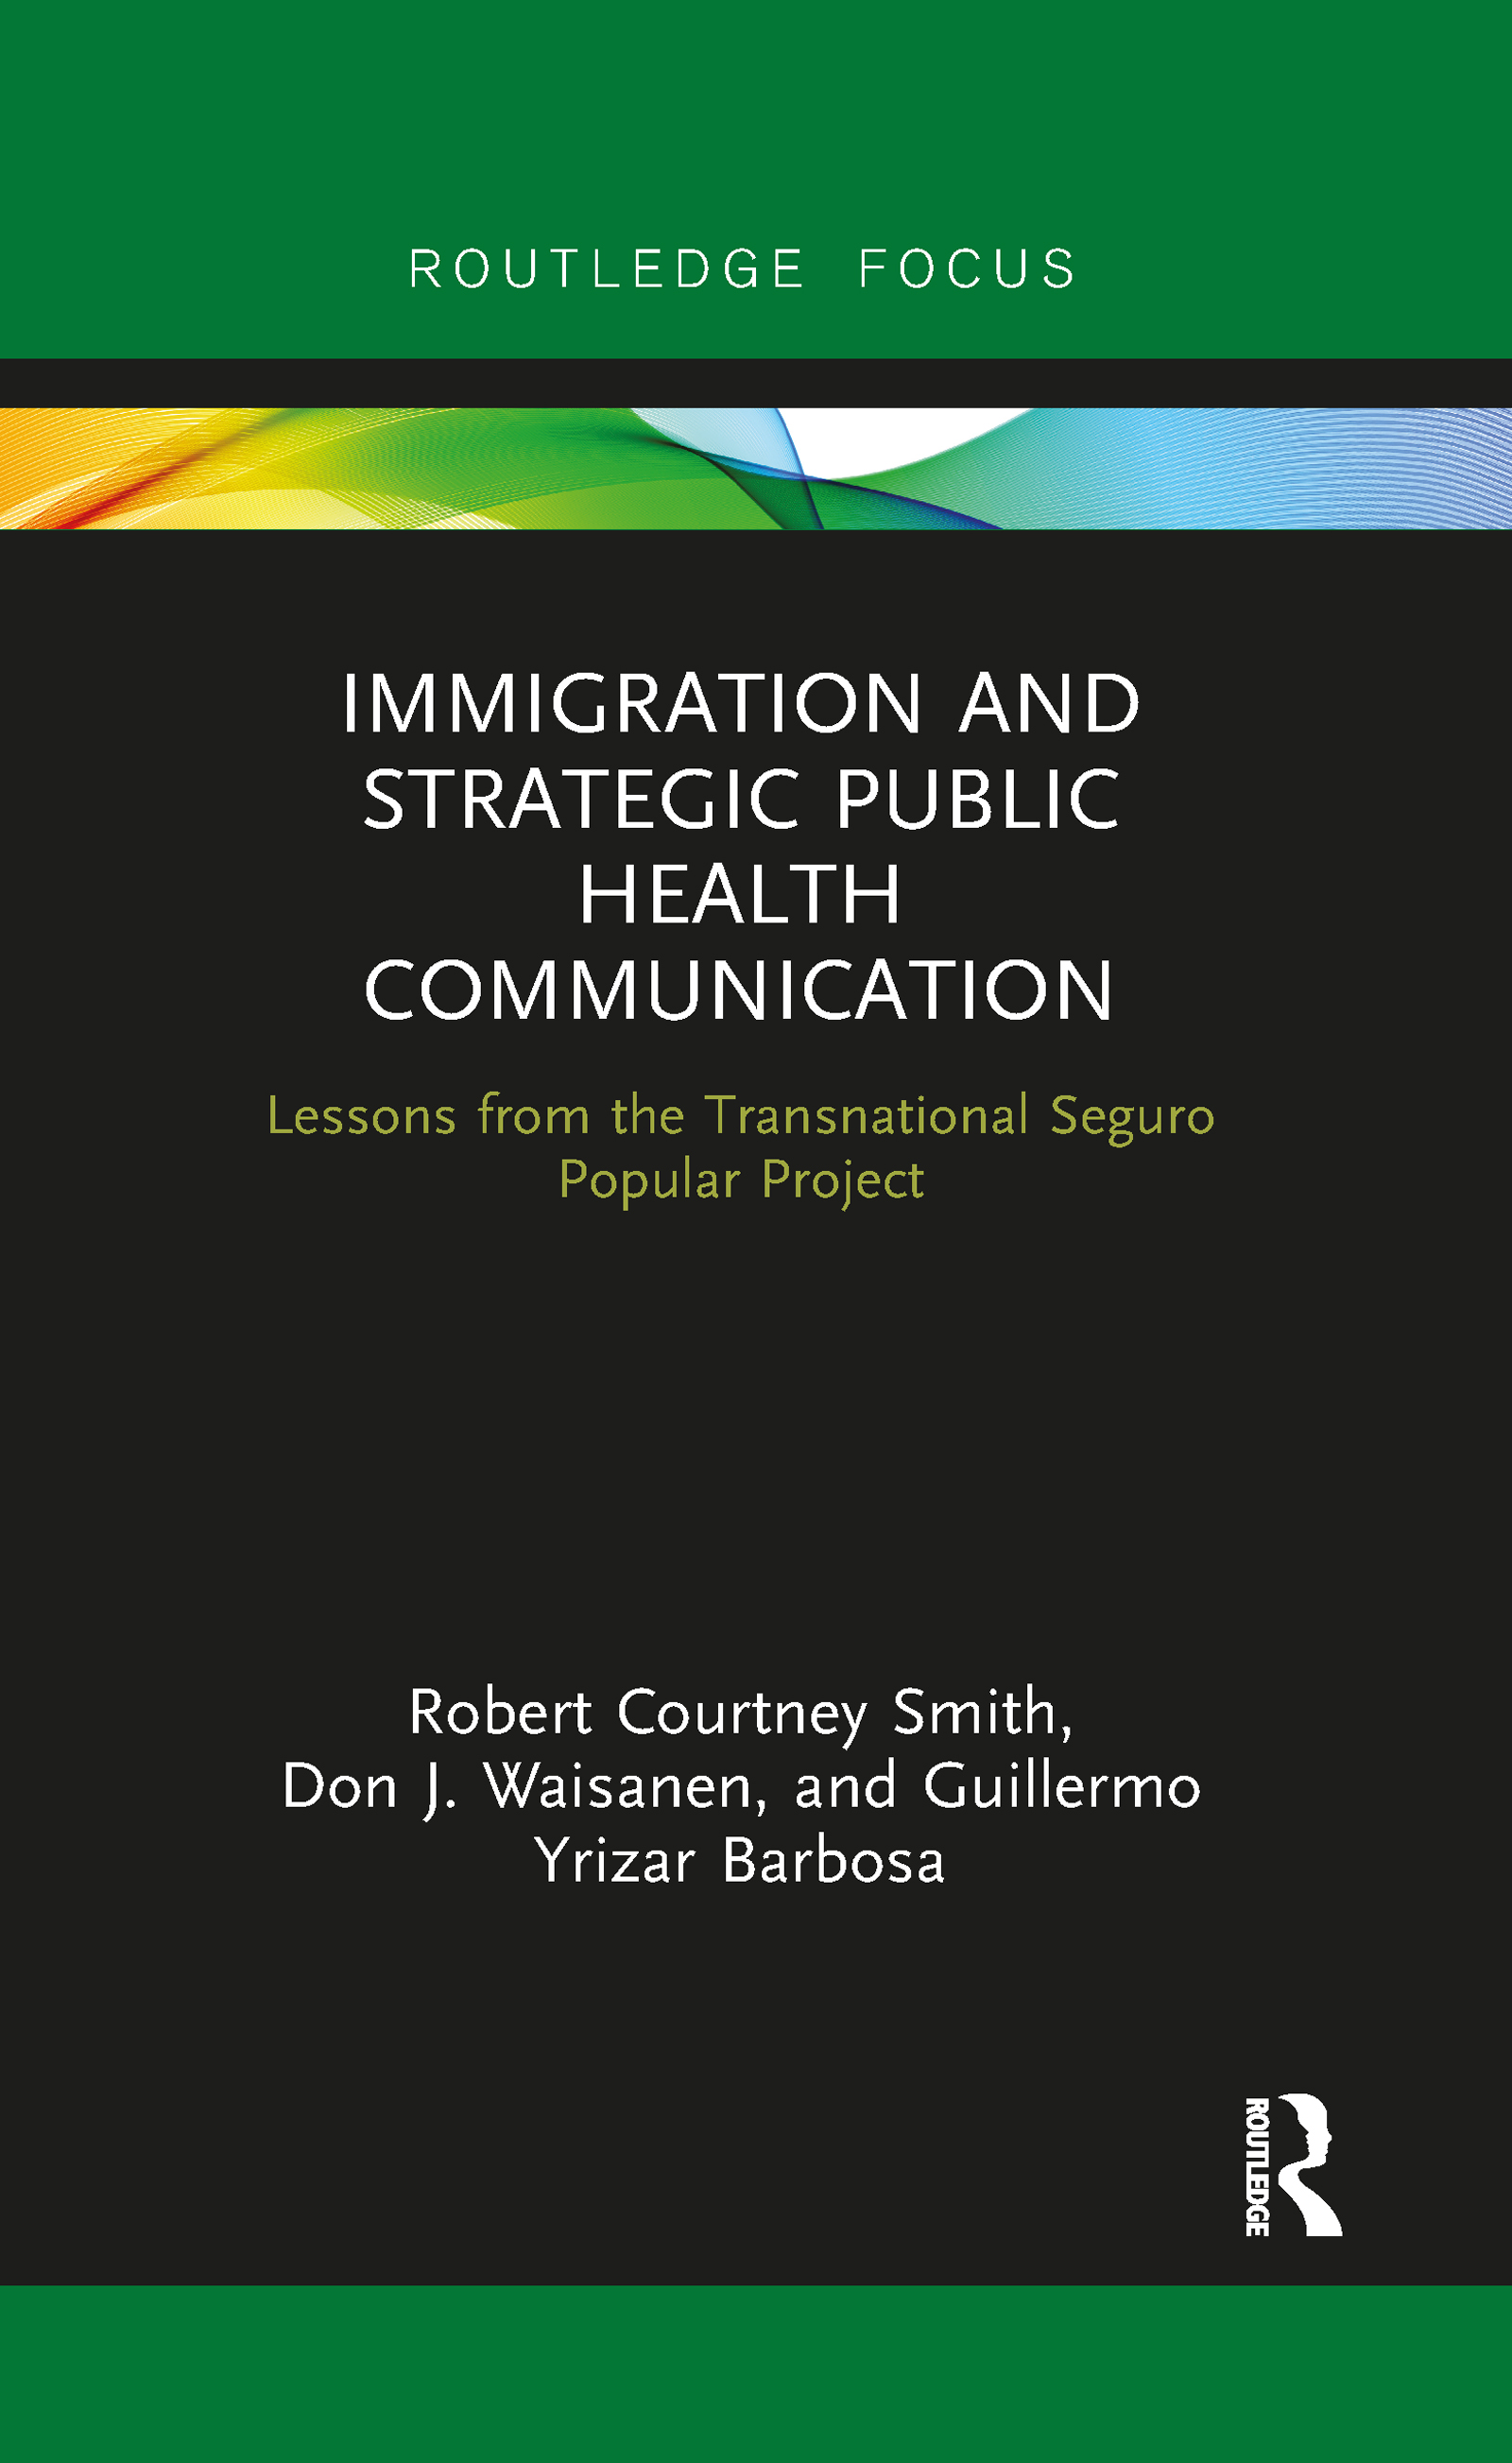 Immigration and Strategic Public Health Communication